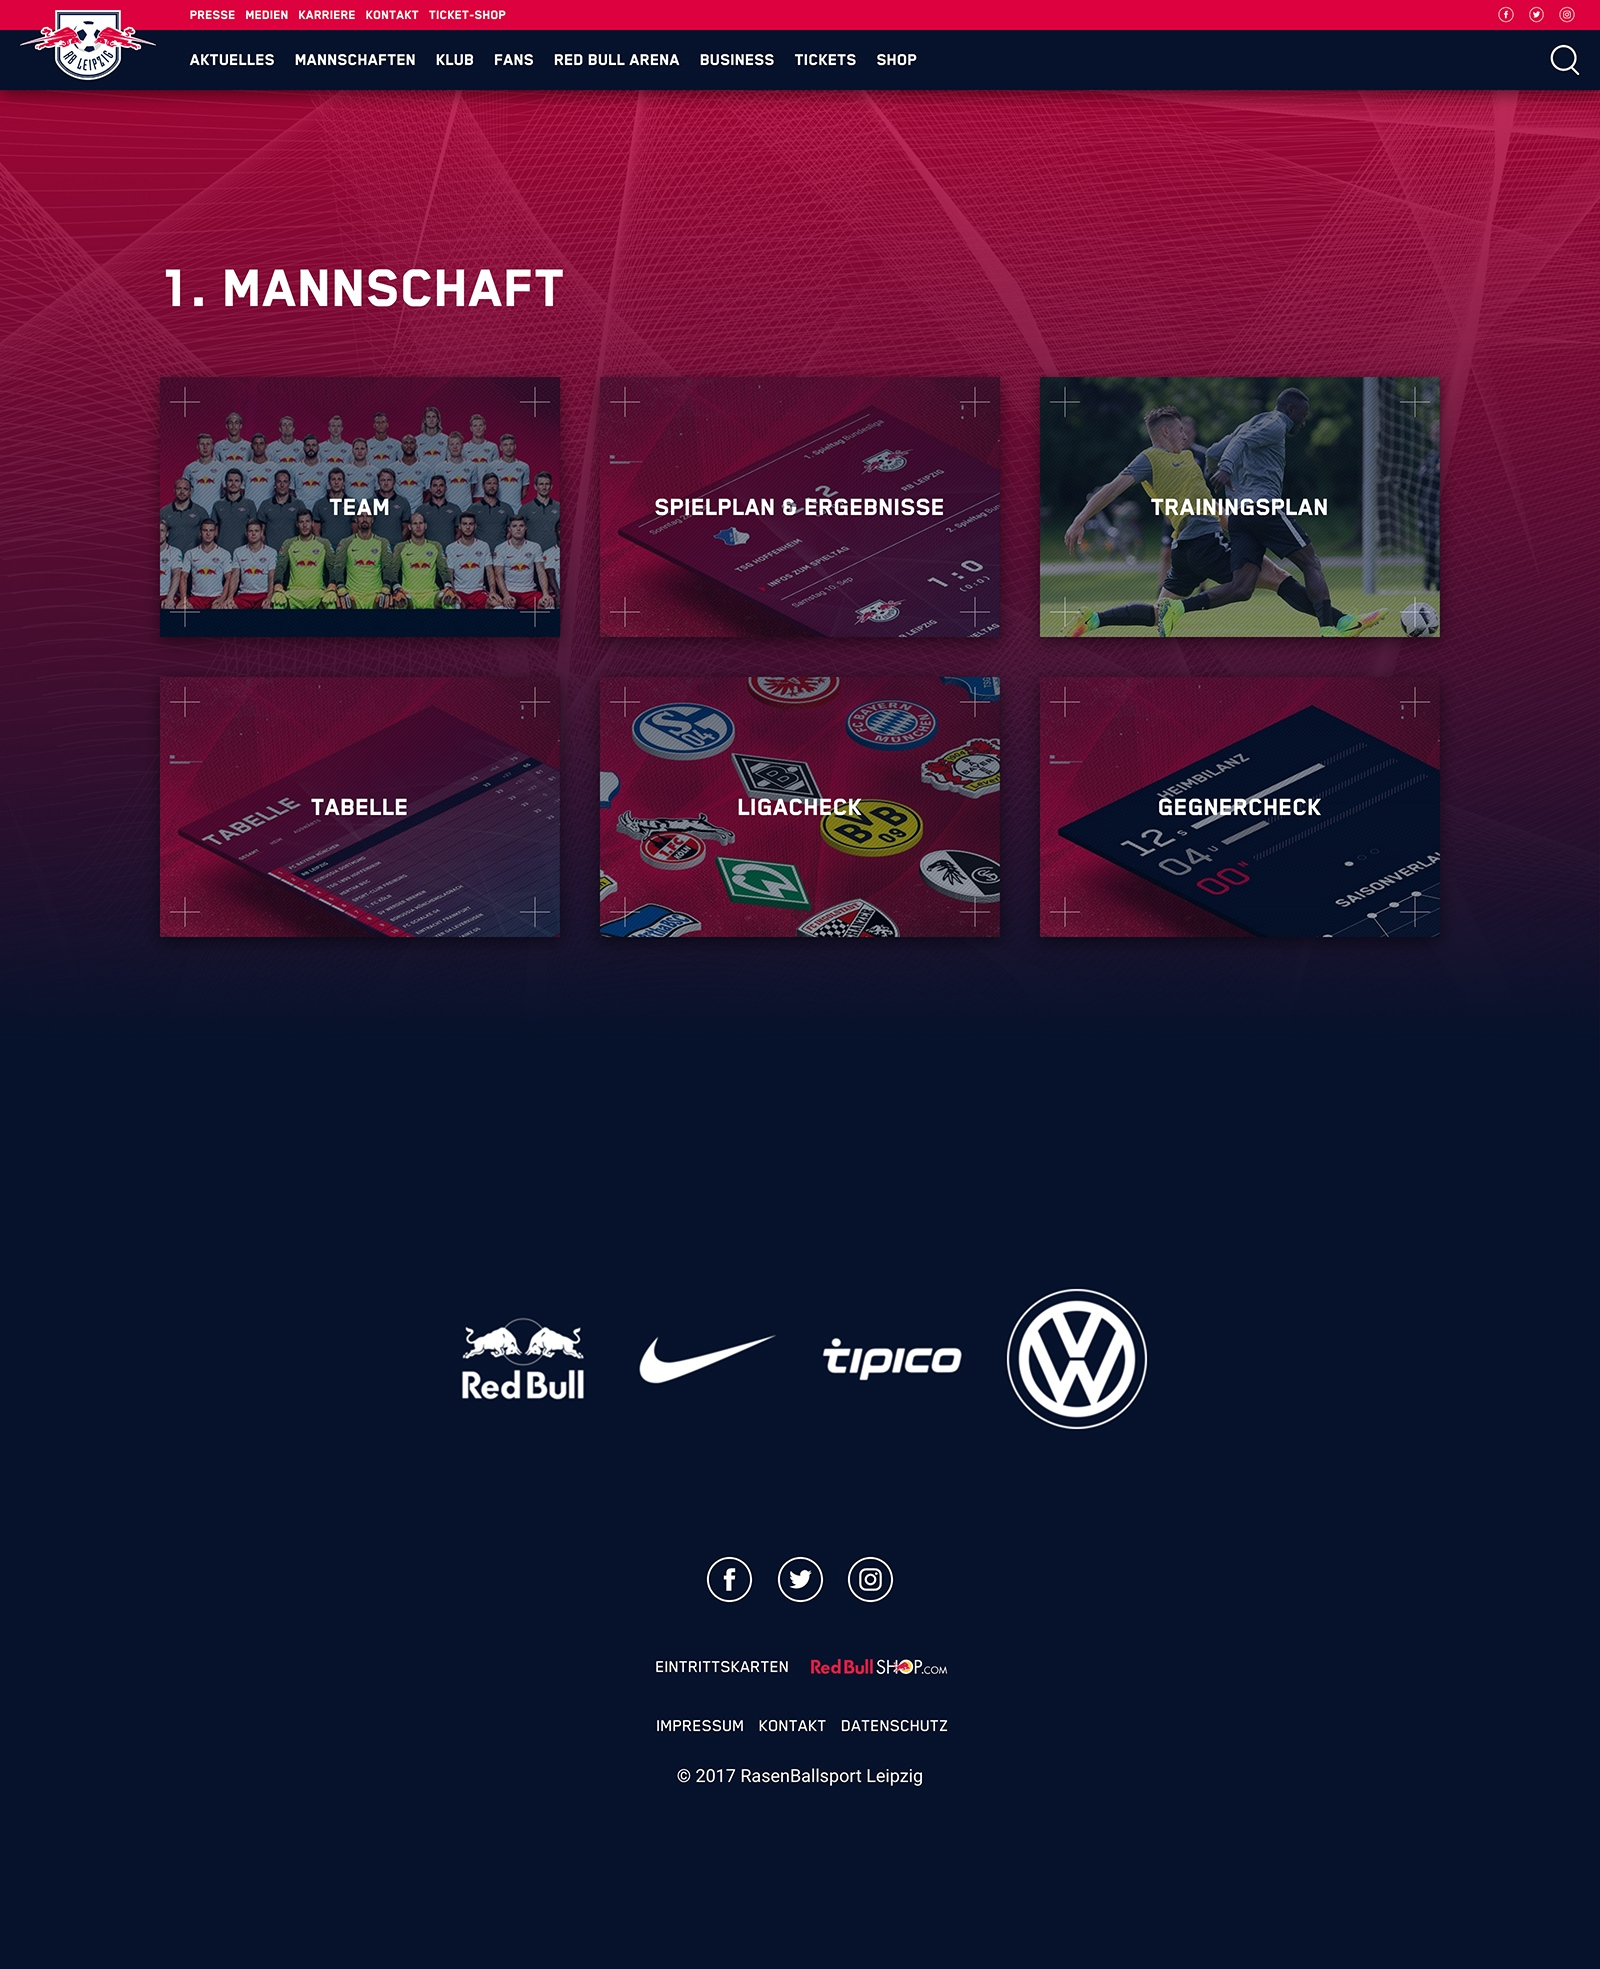 Rb Leipzig Website Relaunch 2017 Image 06